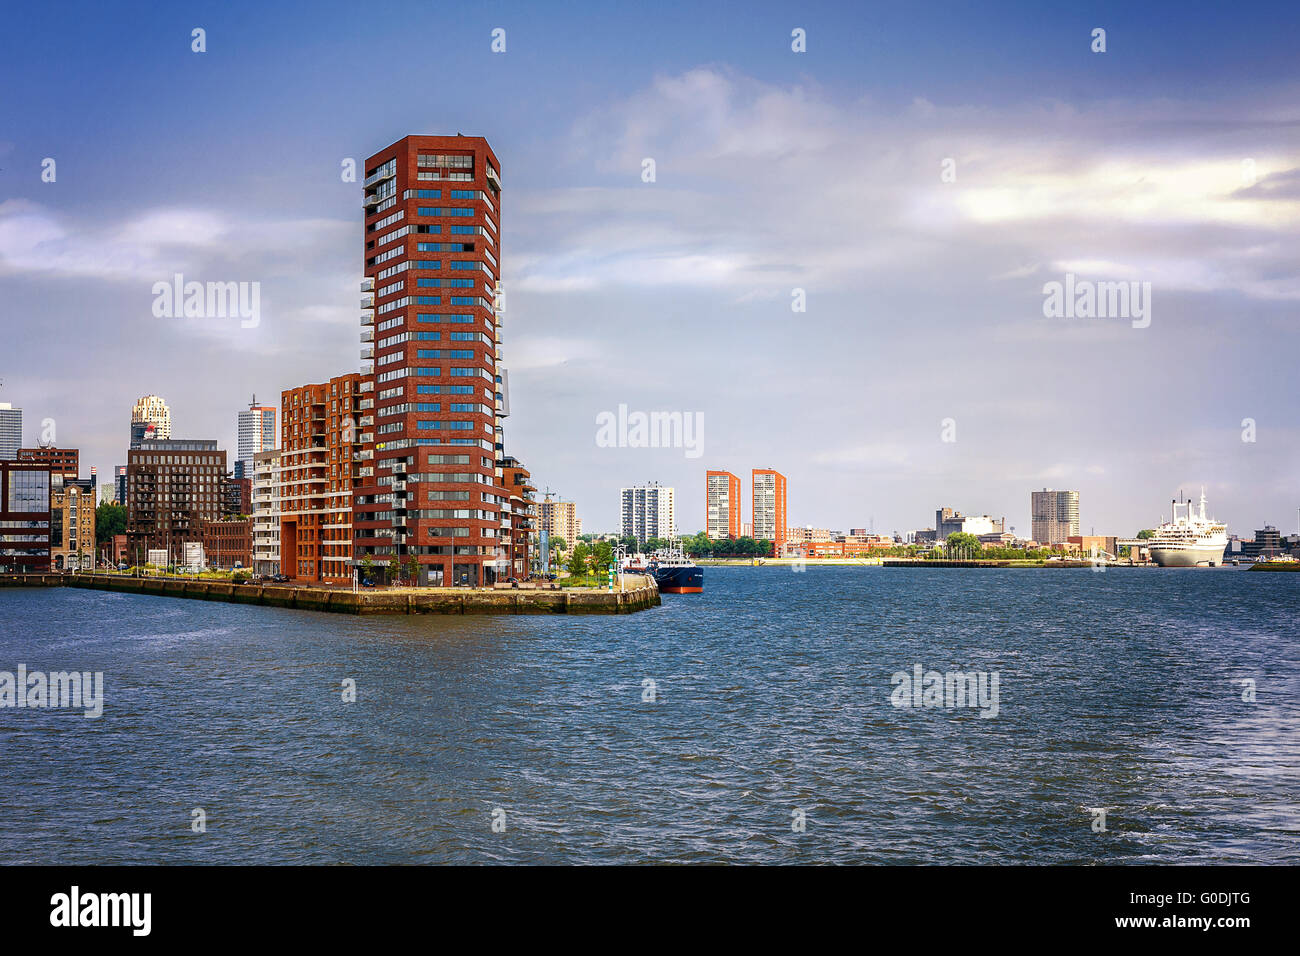 In the port of Rotterdam, Netherlands, overlooking - Stock Image